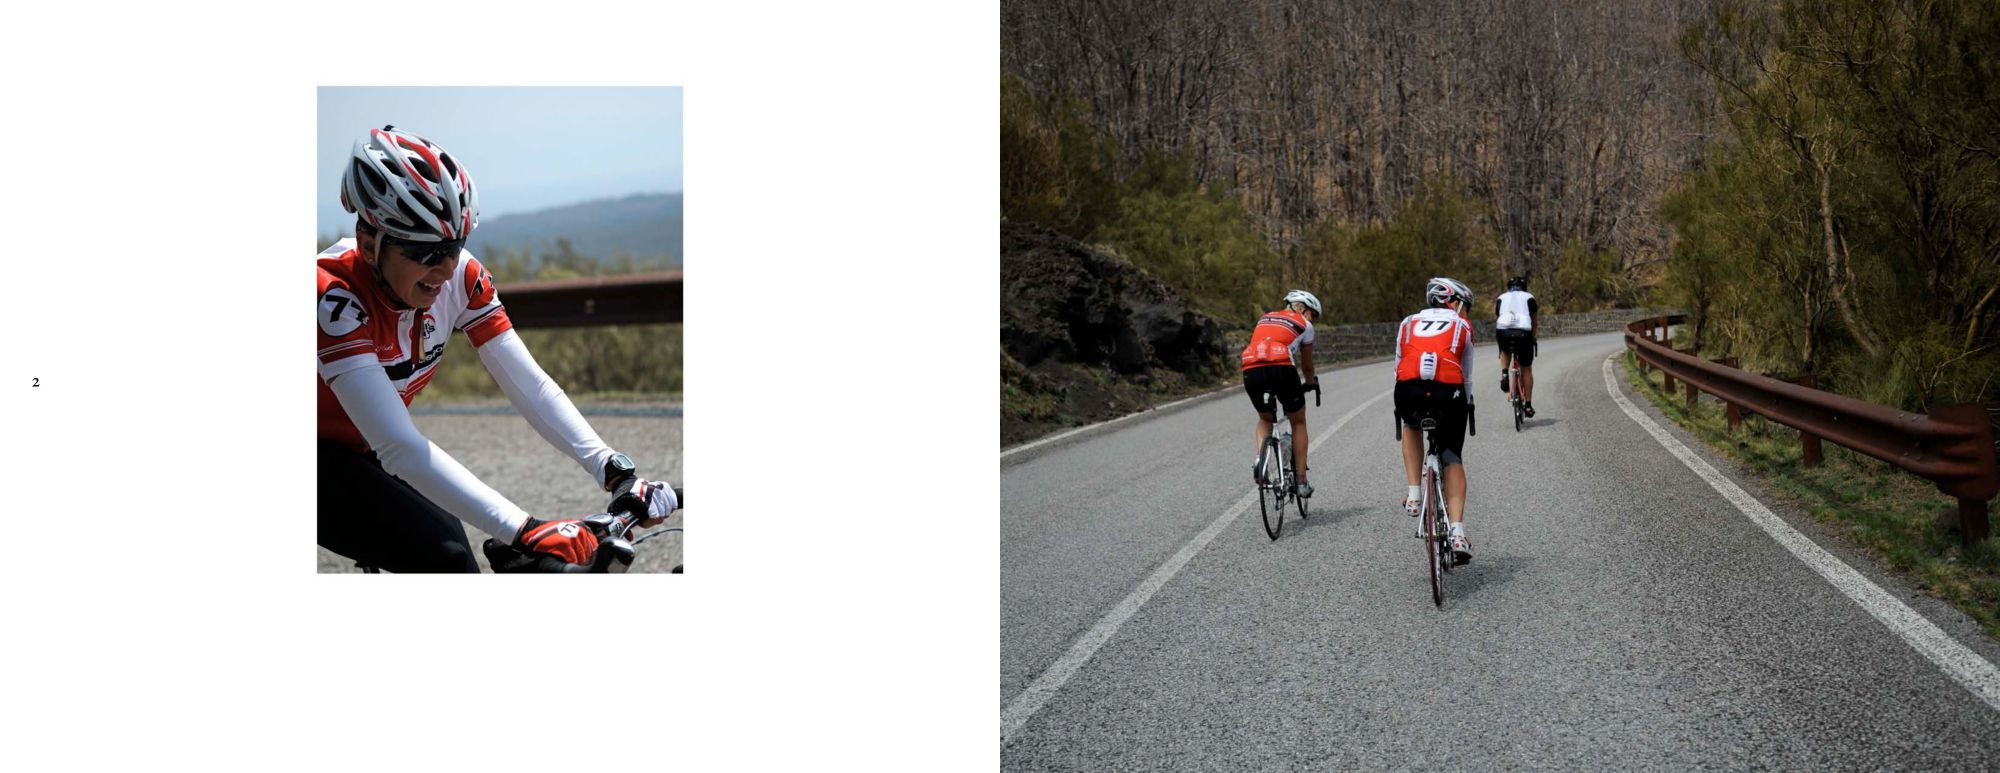 Sicily Album - Page 2:  Never give up / Page3:  The ascent to Mount Etna